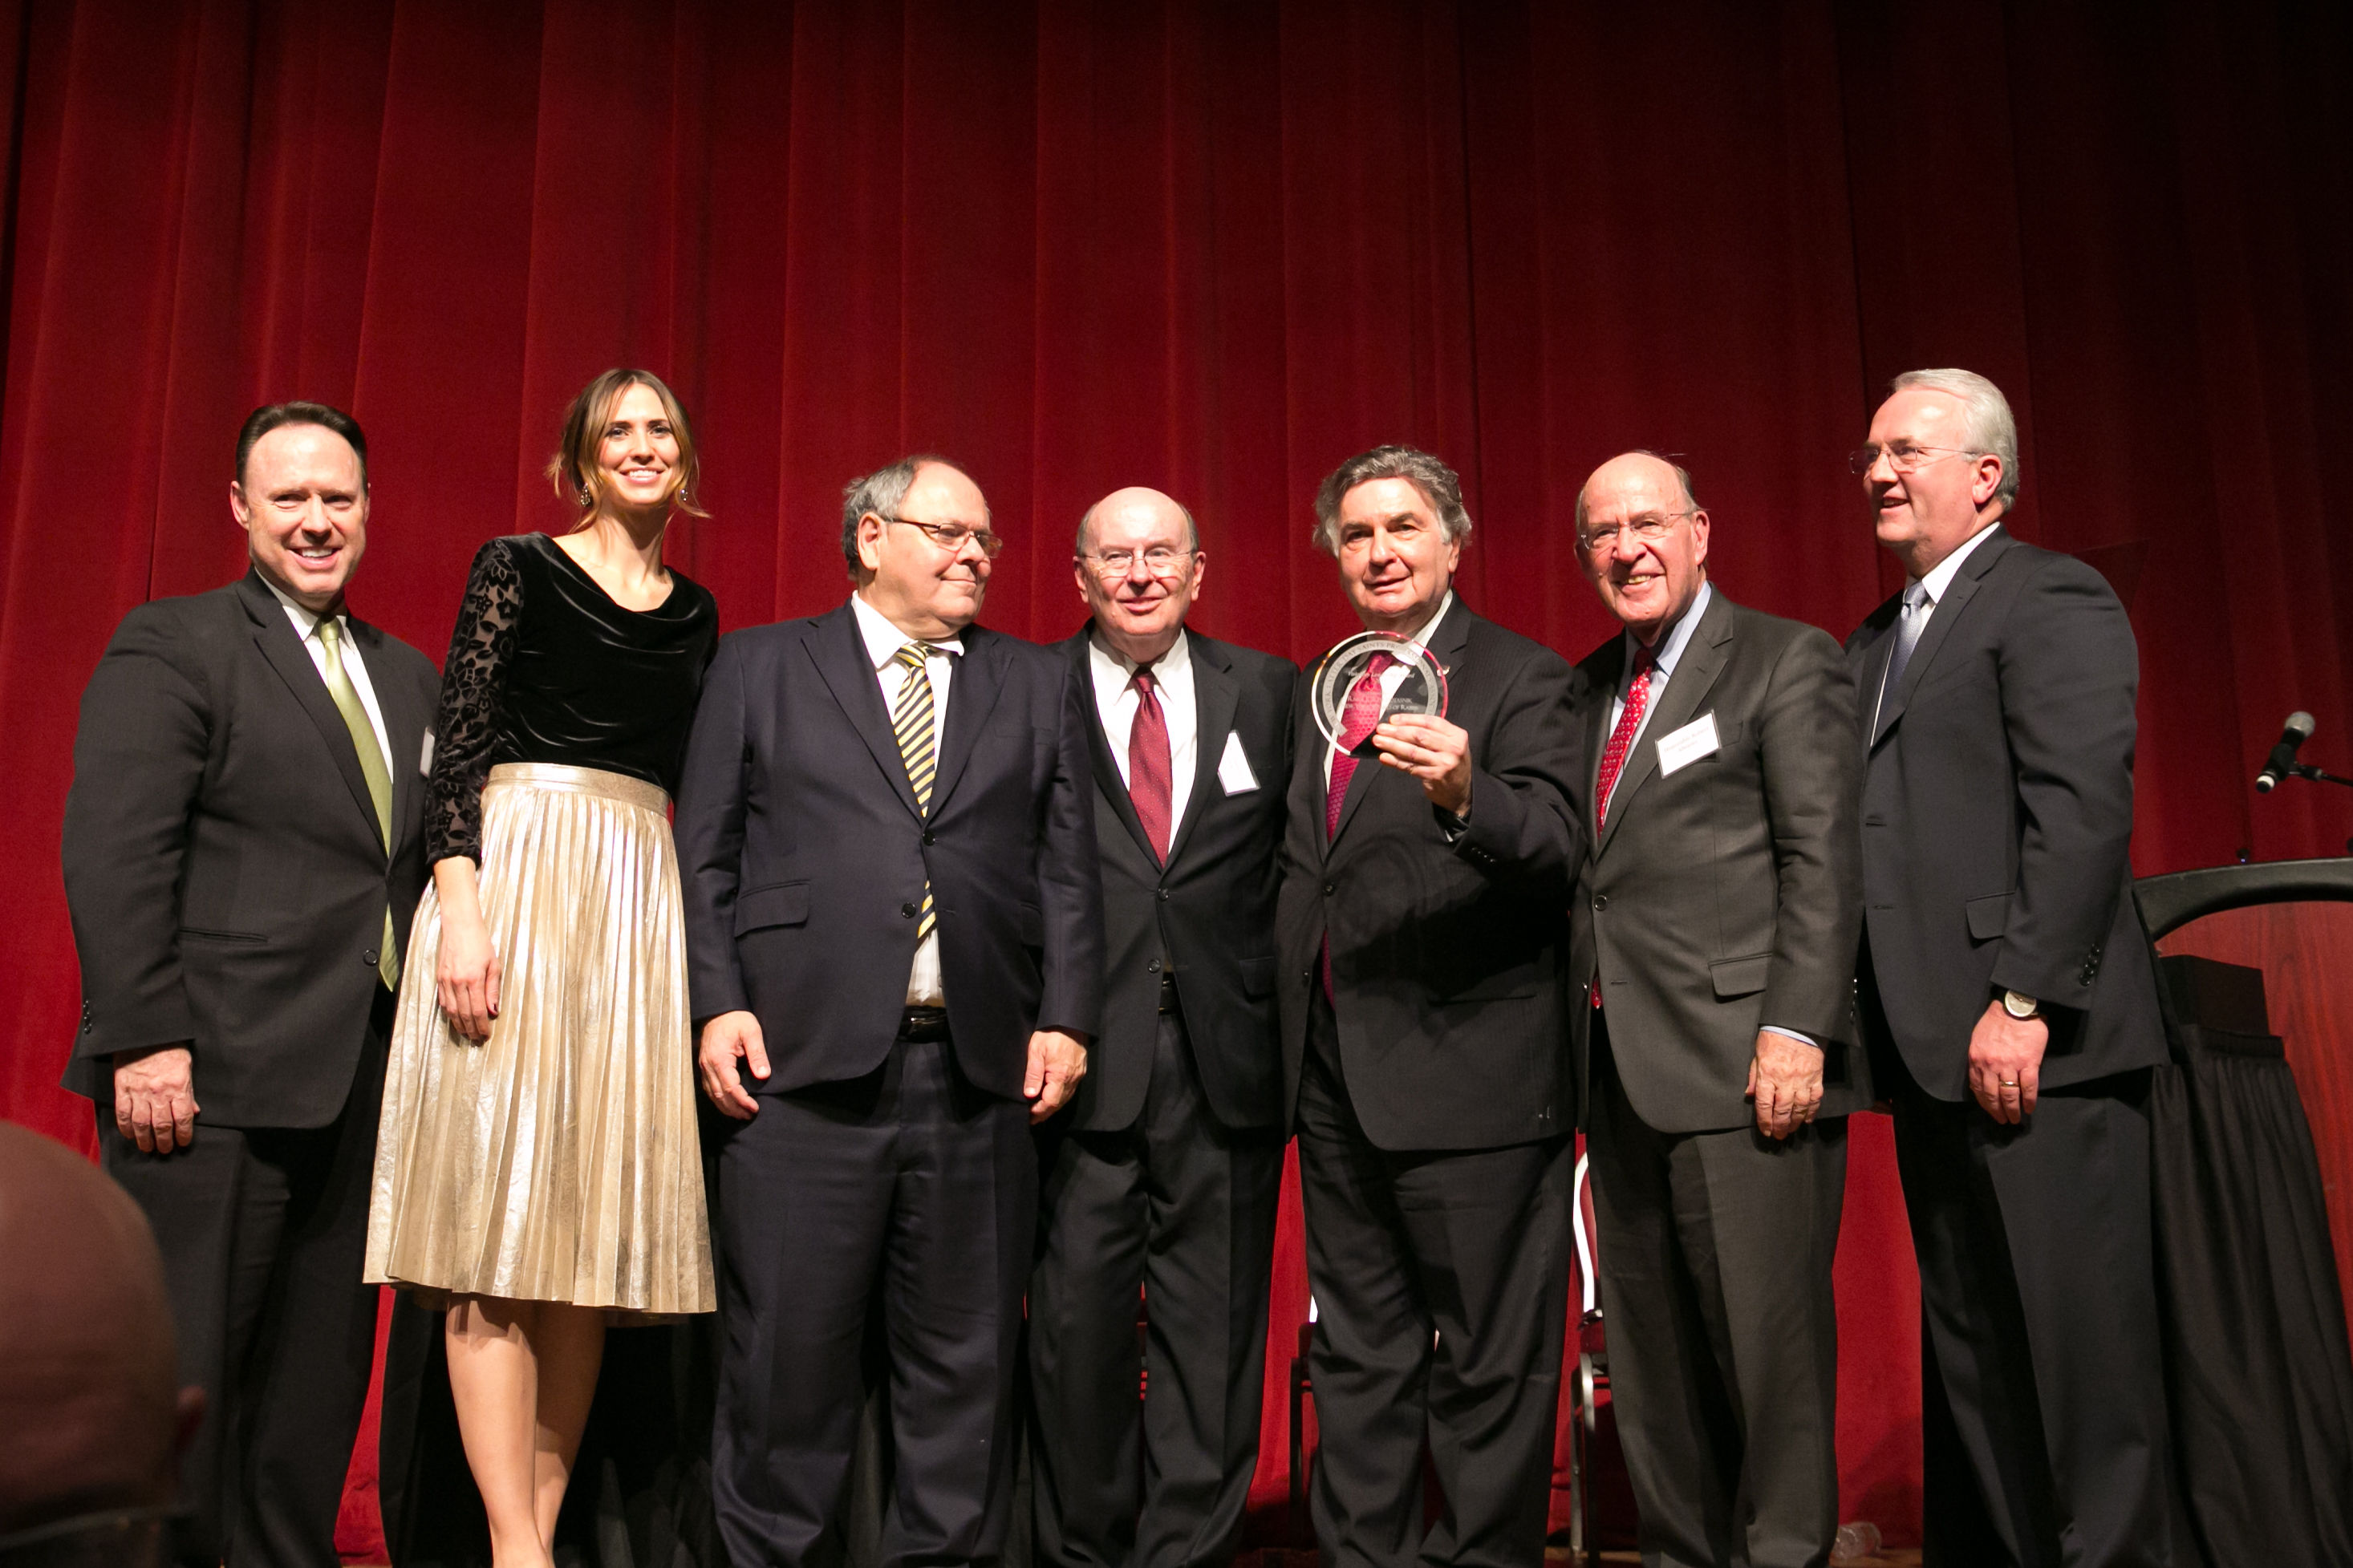 Rabbi Joseph Potasnik receives the Visionary Leadership Award from the New York Latter-day Saint Professional Association on Dec. 18, 2018. From left: Elder David Buckner, Area Seventy; Andrea Combs, local Latter-day Saint representative; Ambassador Dani Dayan; Elder Quentin L. Cook; Rabbi Joseph Potasnik; former New York attorney general Robert Abrams and Elder Jack N. Gerard, General Authority Seventy.